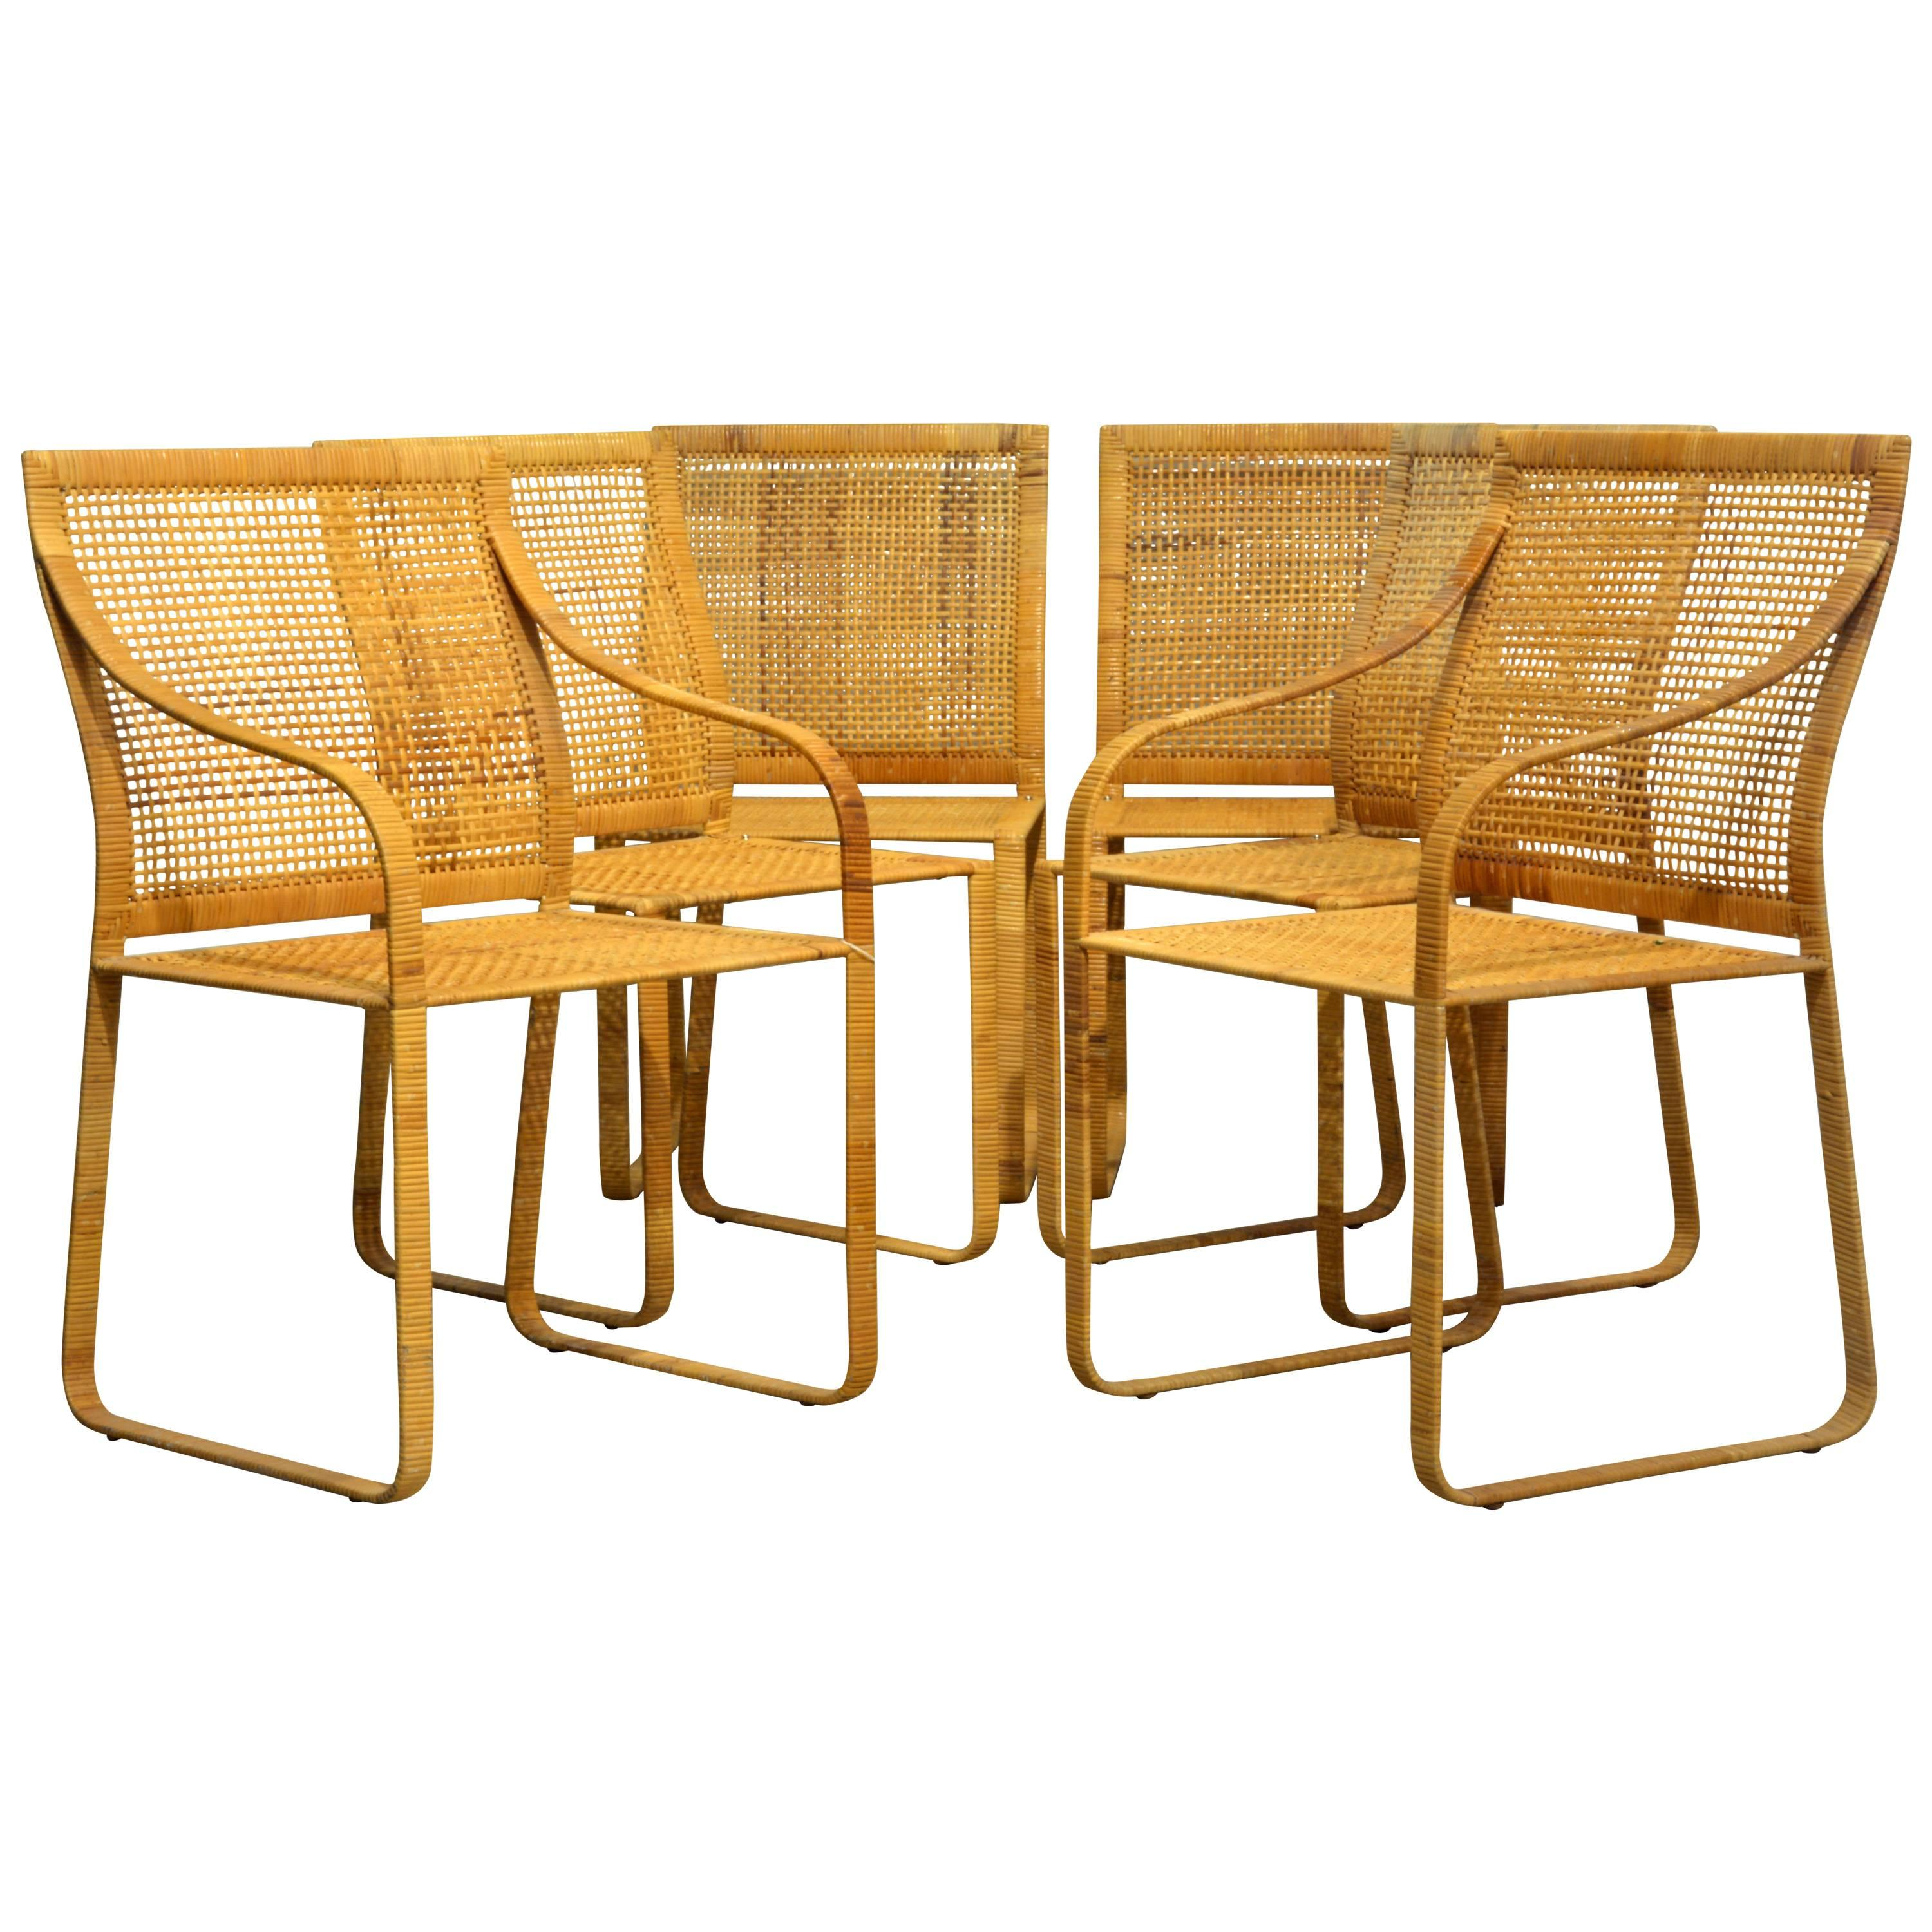 World Market Remarkable Woven Dining Room Chairs To Add